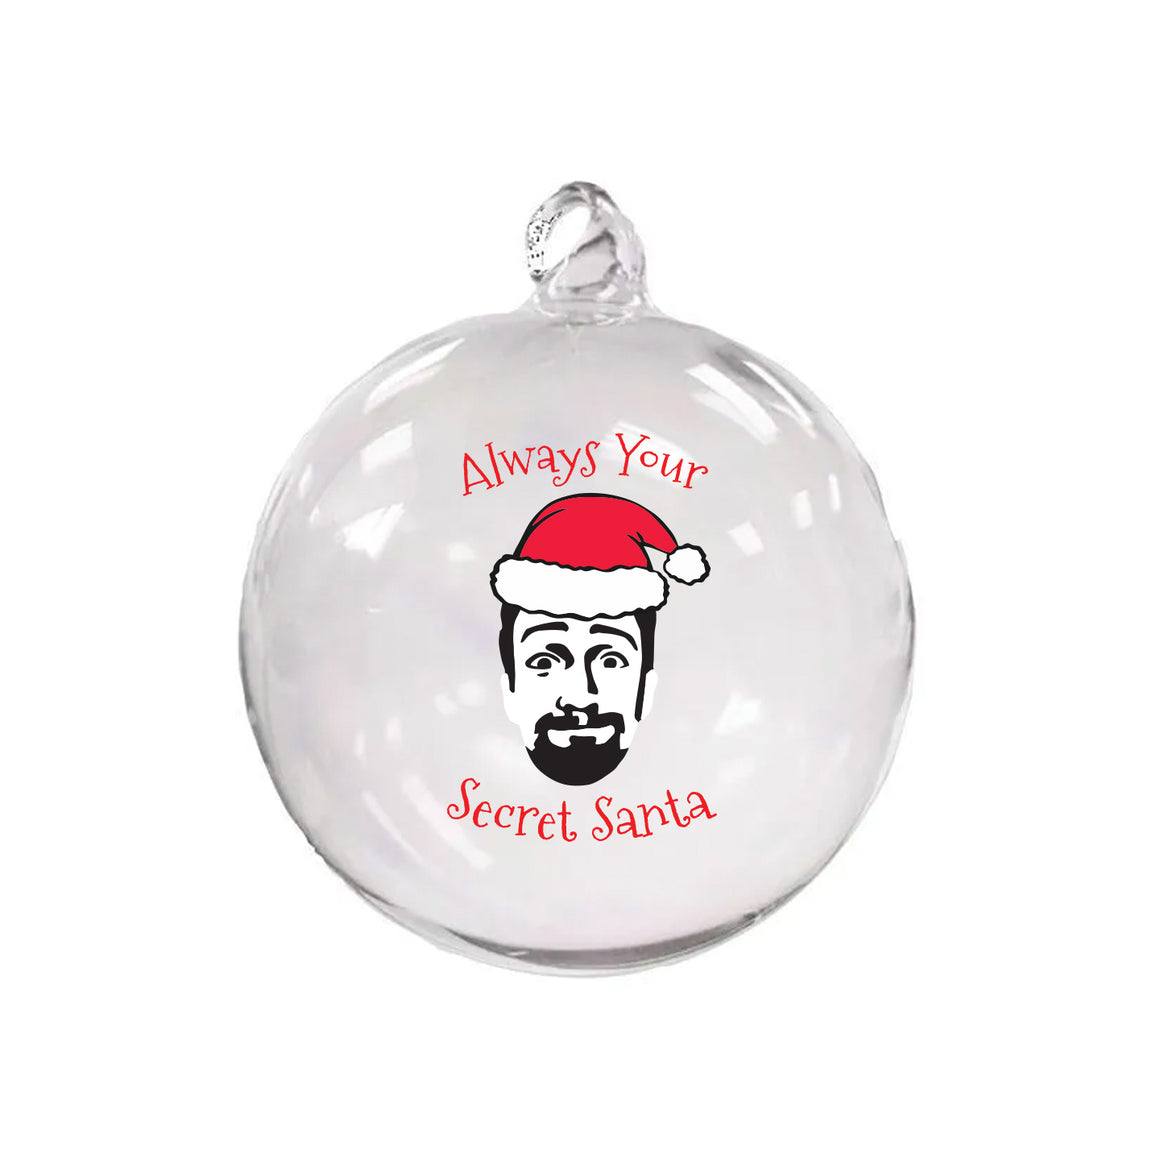 #BitOfAHoliday Ornament